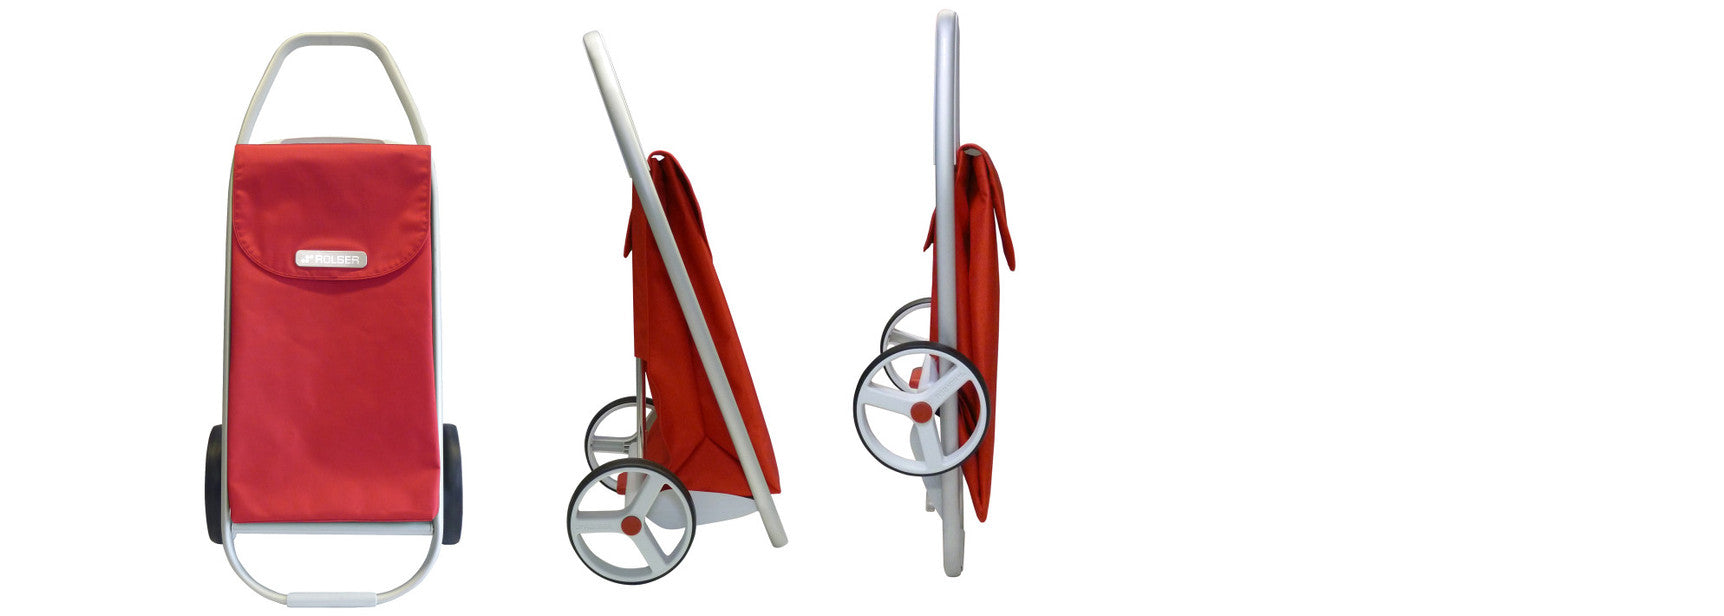 Rolser Rolling Shopping Carts: Stylish Shopping Trolleys